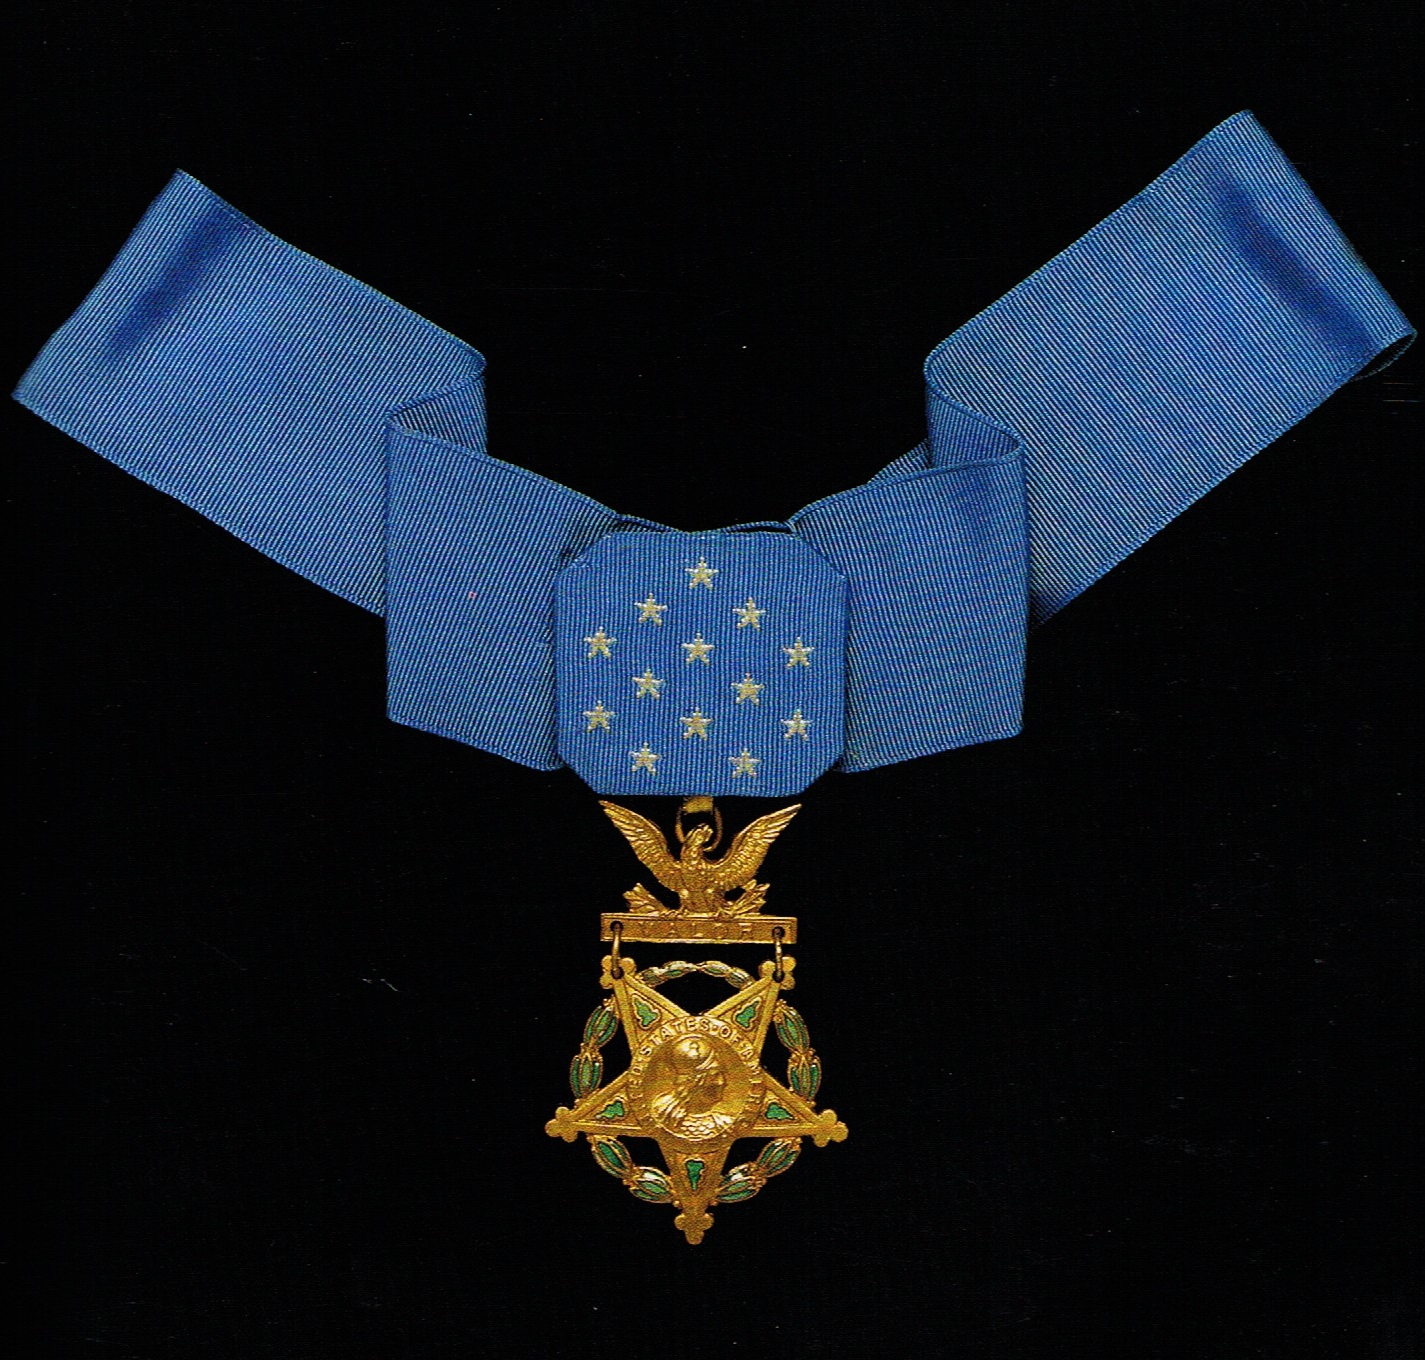 """In the center of the Army Medal of Honor is the head of Minerva, surrounded by the words """"United States of America."""" The reverse side of the medal is inscribed """"The Congress to"""" with the recipient's name."""